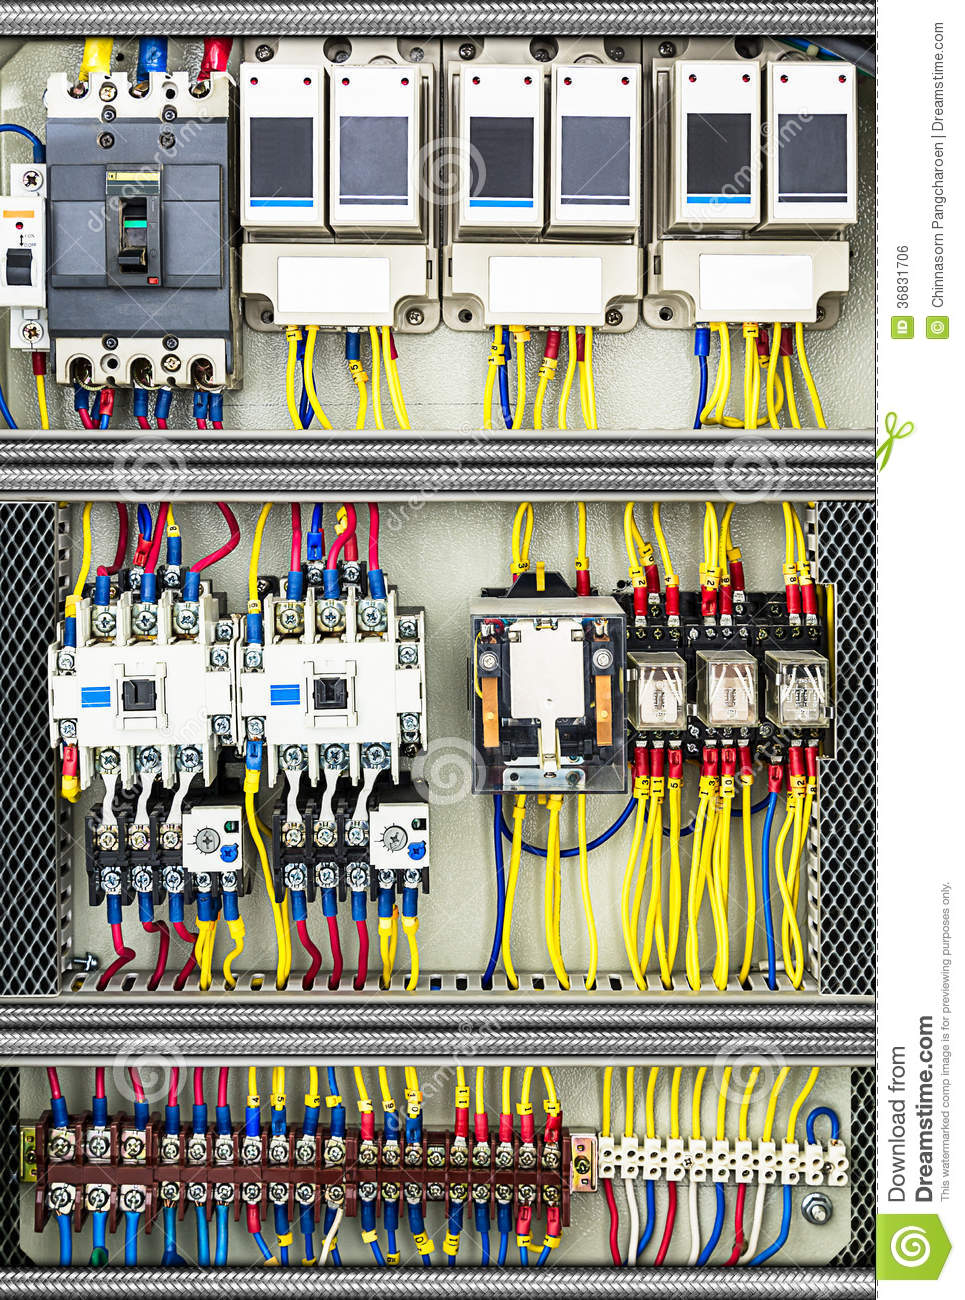 Guide To Cooling Ls Swapped Vehicles From 300 1000 Horsepower also Wholesale Plug Wire Loom also Tigcraft Sv700 Thunderbike likewise ElectricalInstallation besides Royalty Free Stock Image Electric Switchboard System Electrical Control Box Image36831706. on wire harness technology